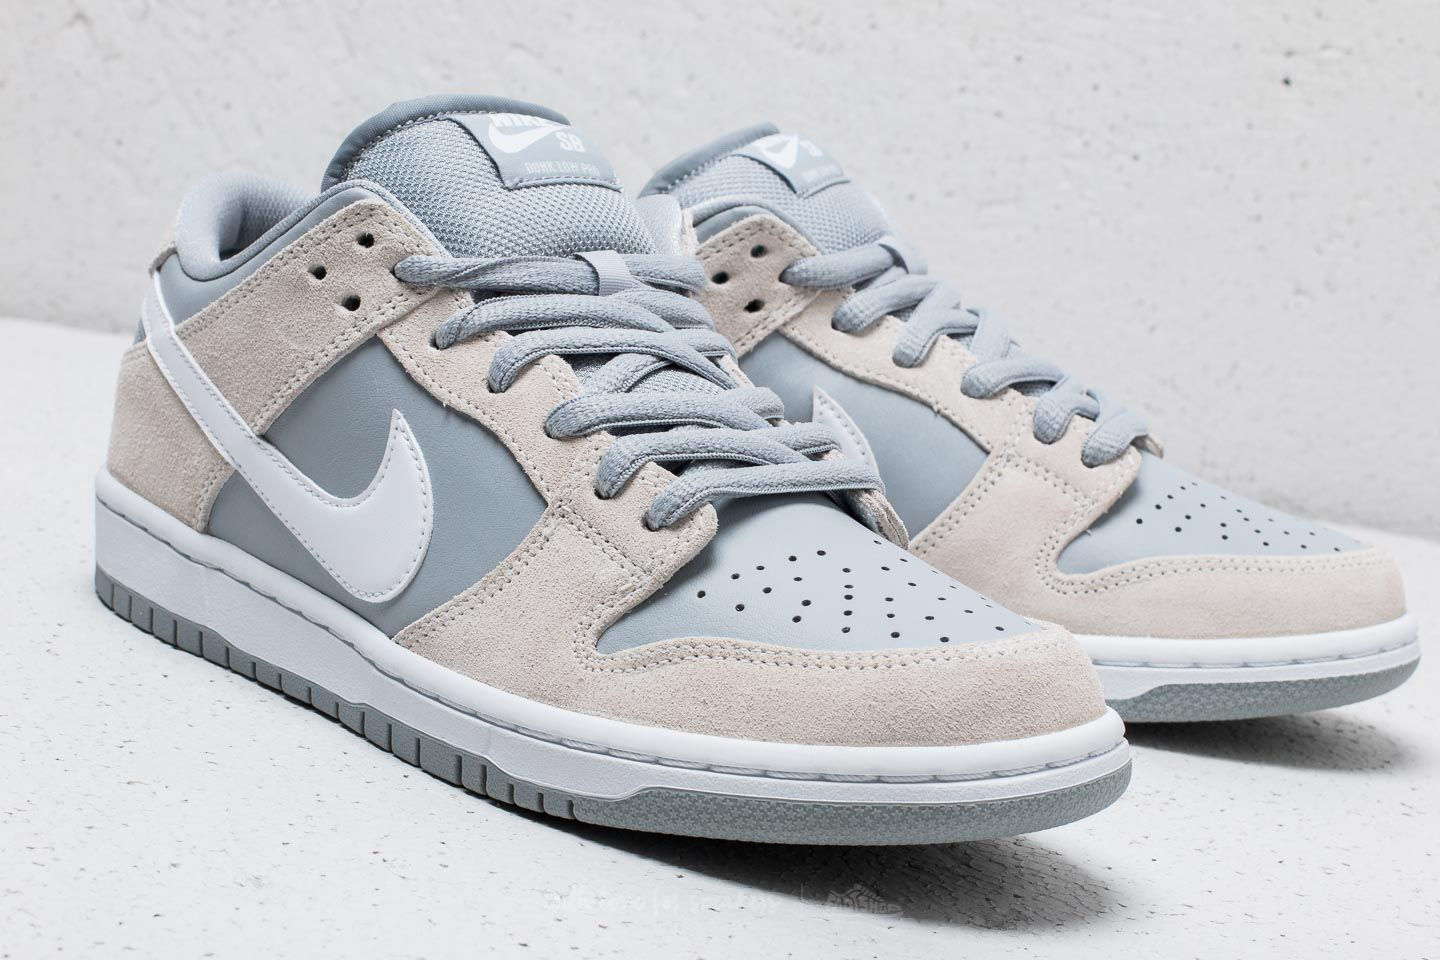 ... canada nike sb dunk low trd summit white white wolf grey at a great  price 9a0fa a90e9e21ba1